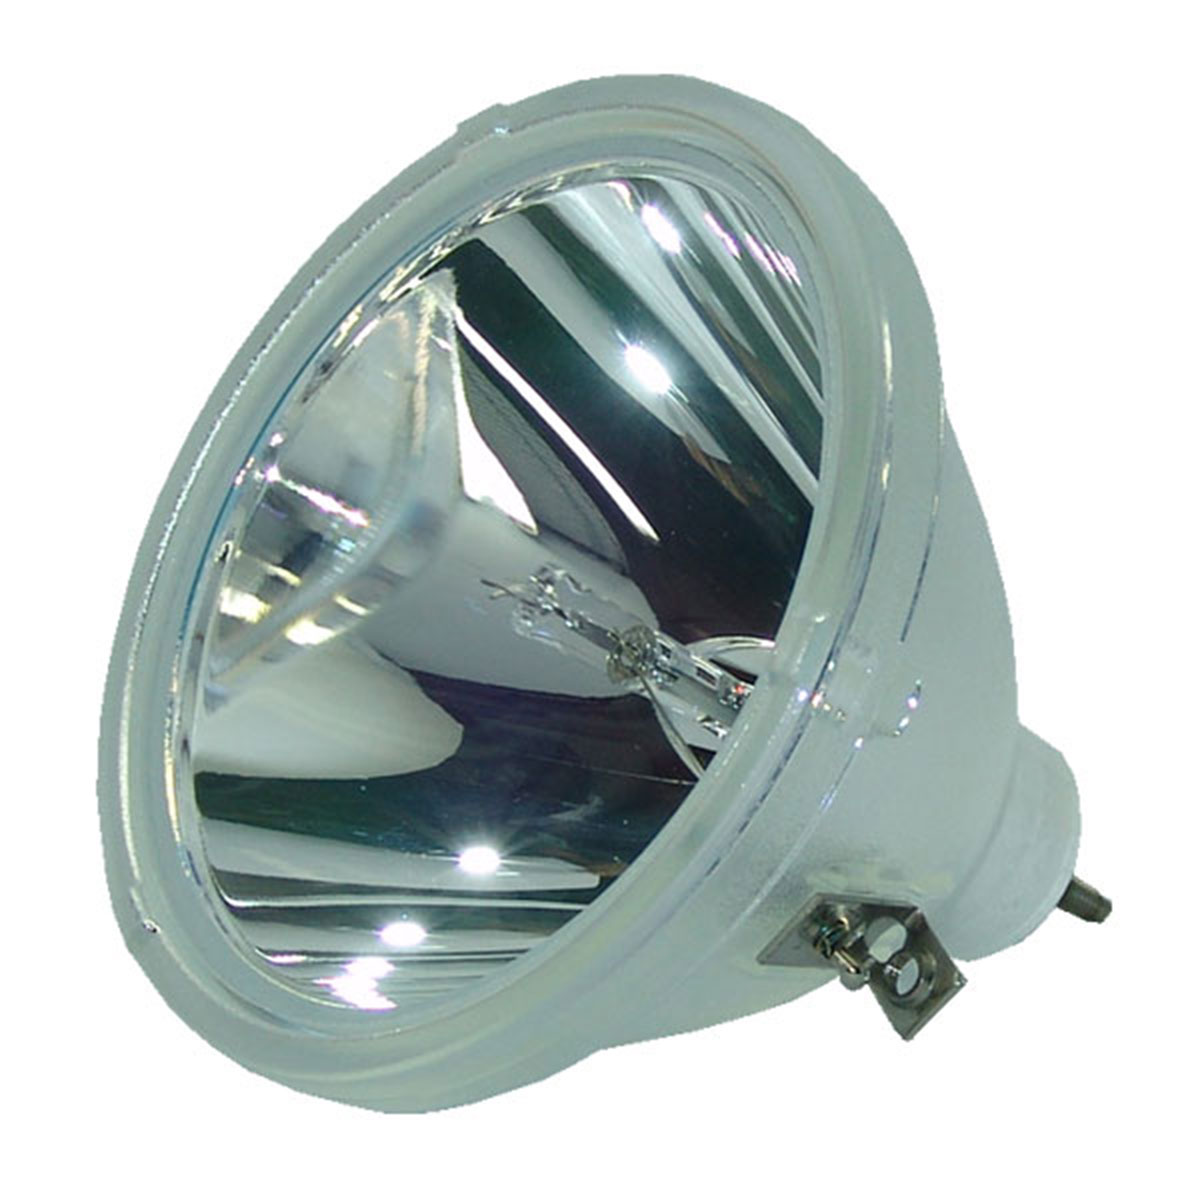 Philips Bare Lamp For Sony KF-60XBR800 / KF60XBR800 Proje...